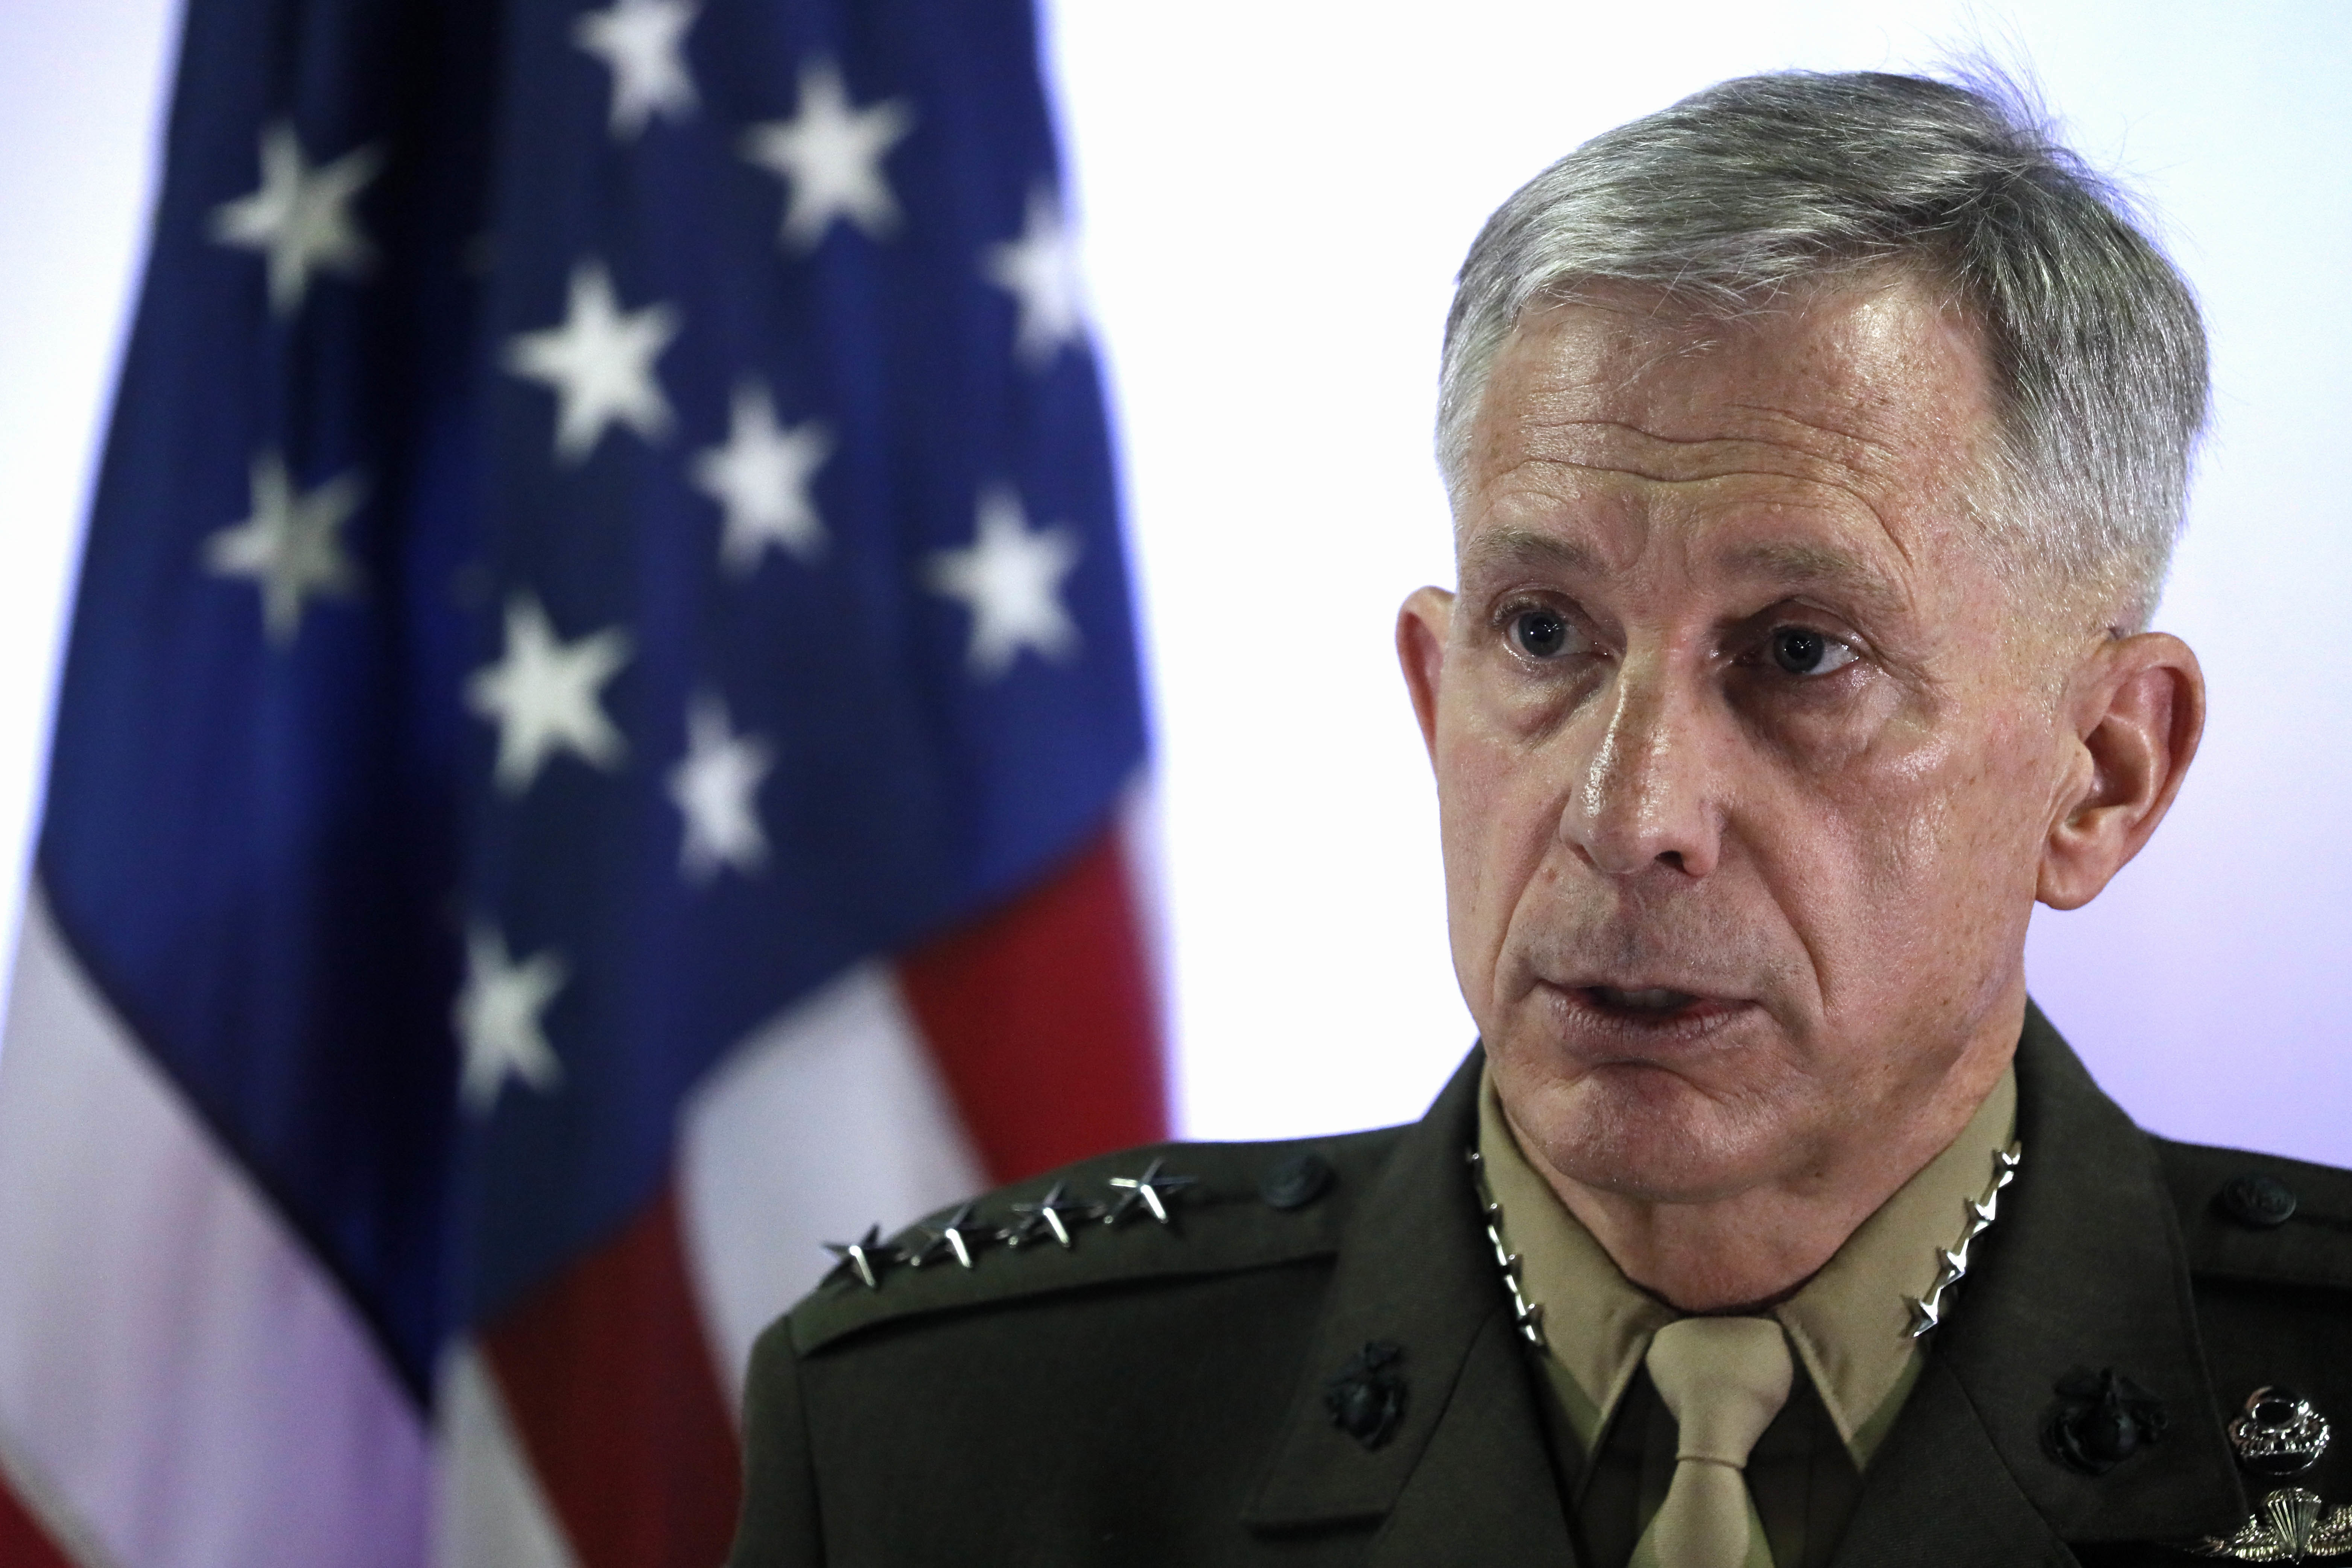 U.S. Marine Corps General Thomas Waldhauser holds a news conference at Camp Lemonnier in Ambouli, Djibouti, April 23, 2017.